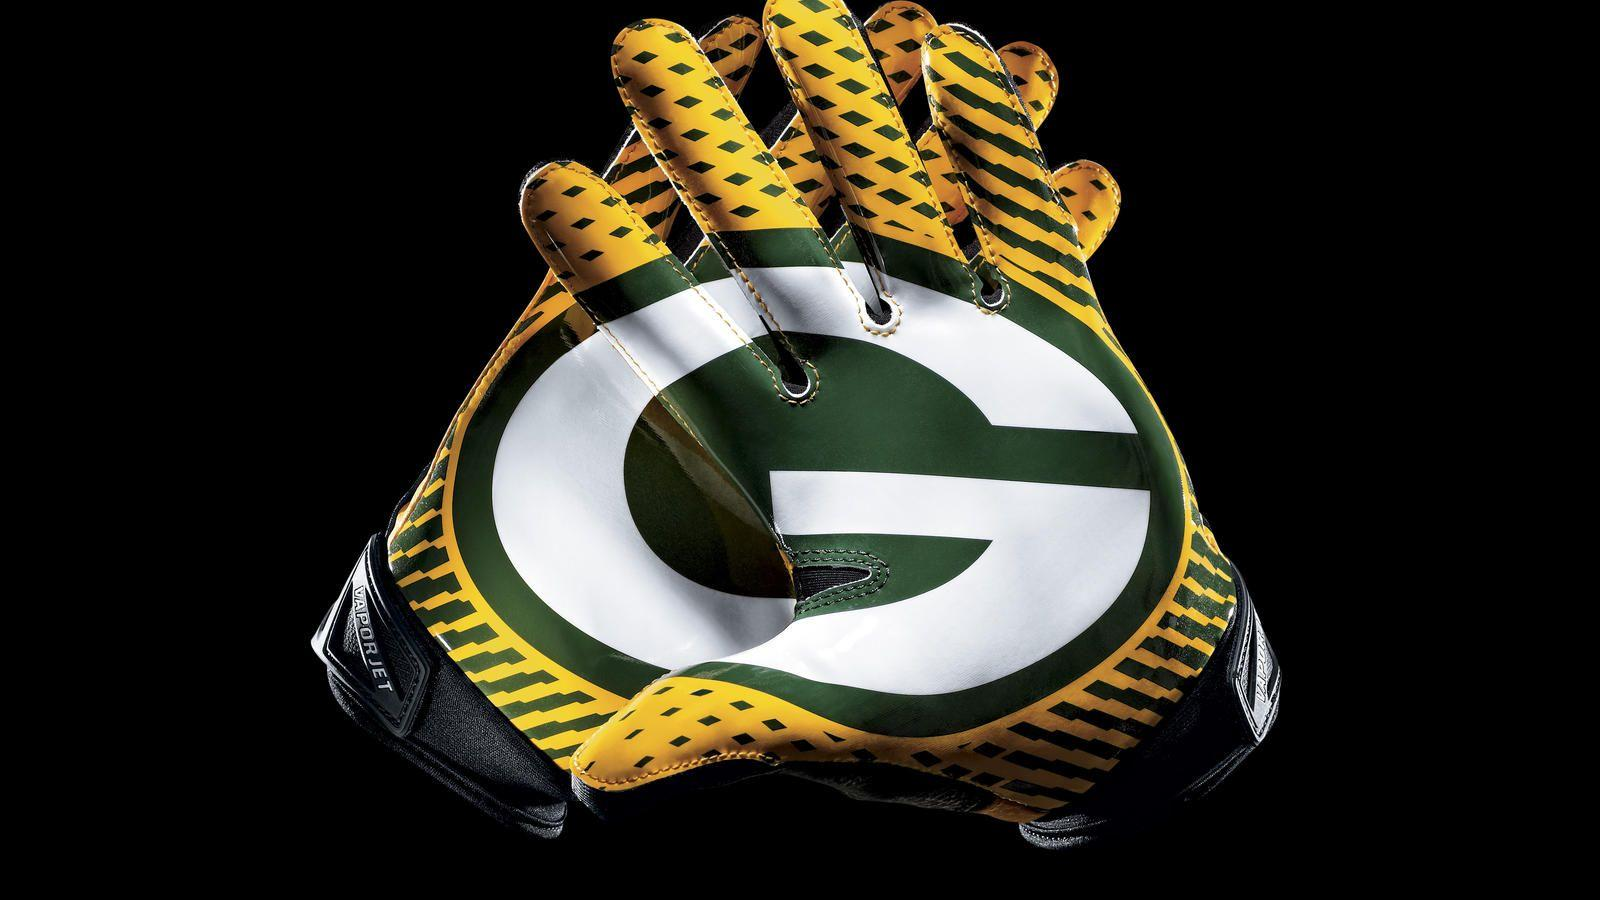 green bay packers wallpaper 2016 - photo #5